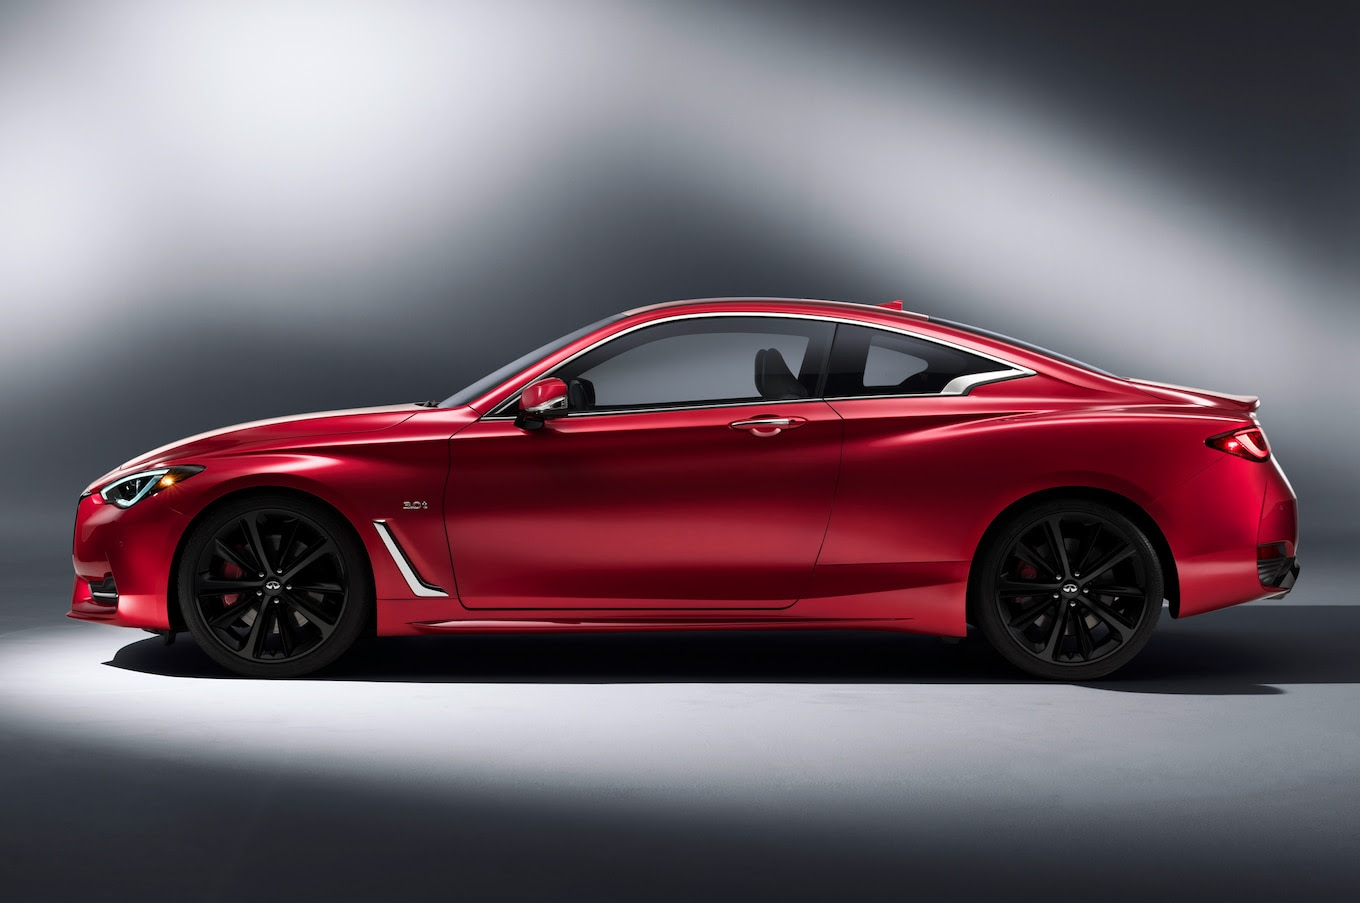 2017 infiniti q60 coupe priced lower than outgoing model